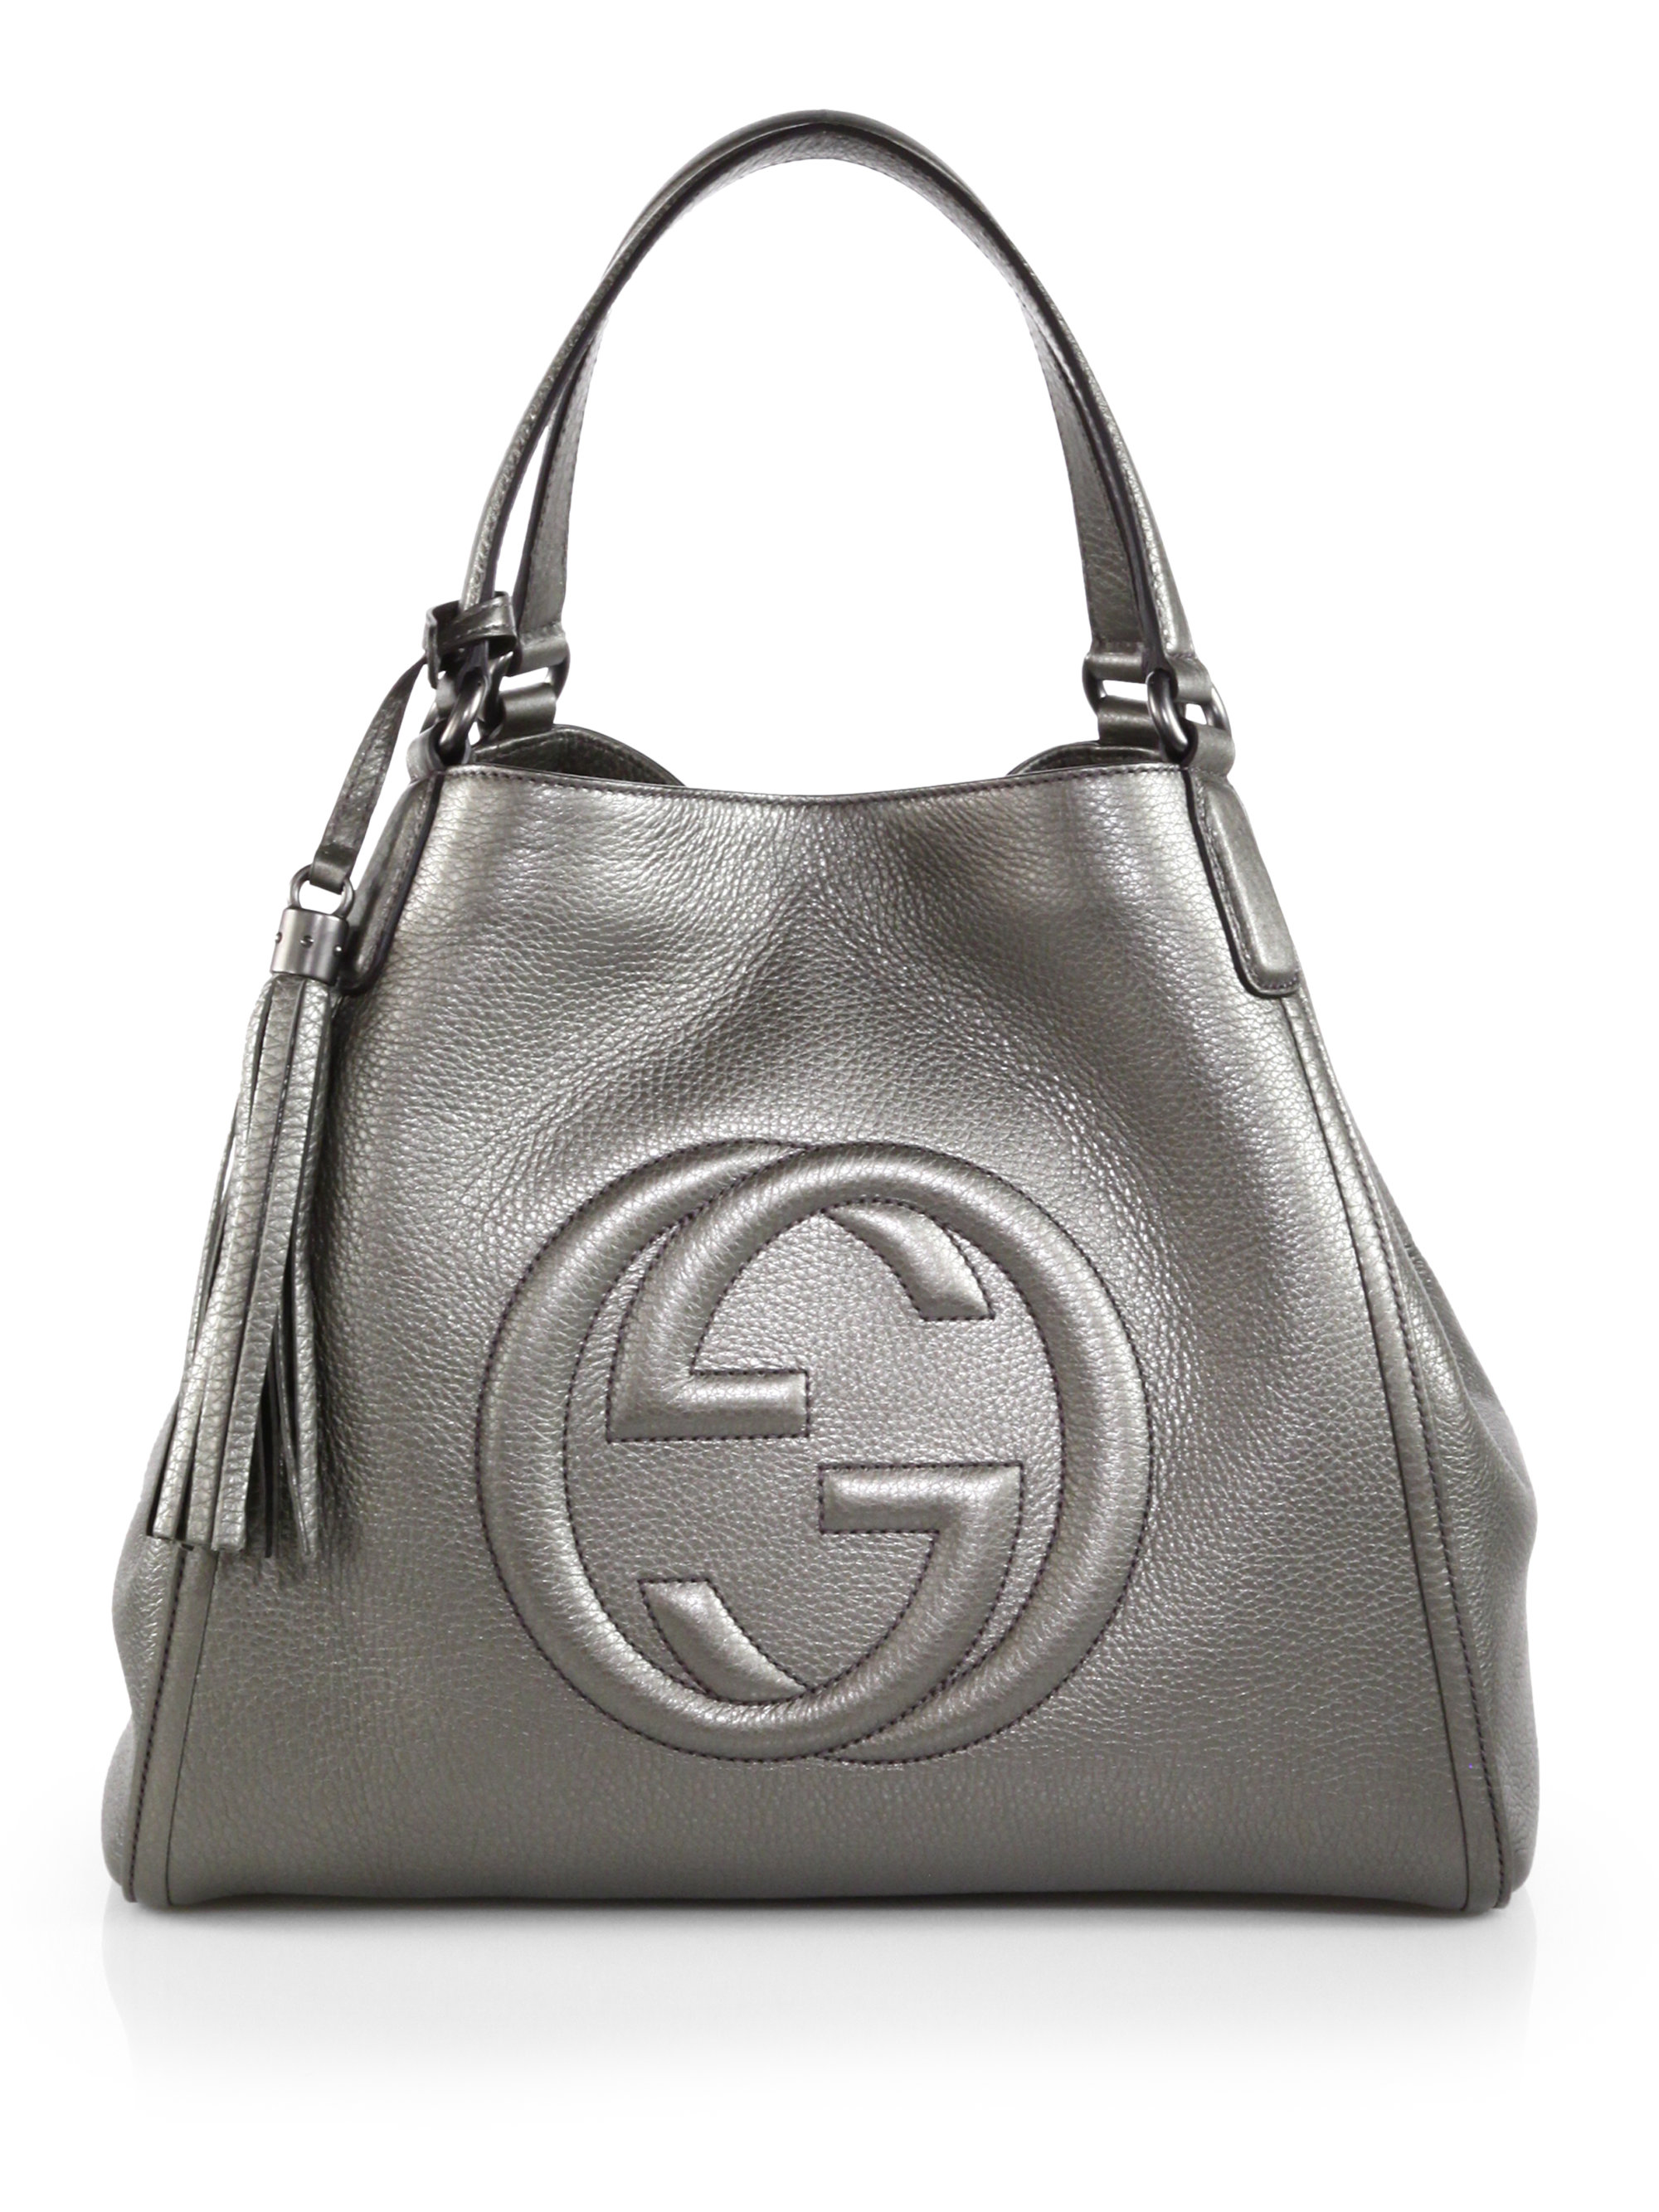 ac0d6731fd6b4 Gallery. Previously sold at  Saks Fifth Avenue · Women s Gucci Soho Bag  Women s Faux Leather ...